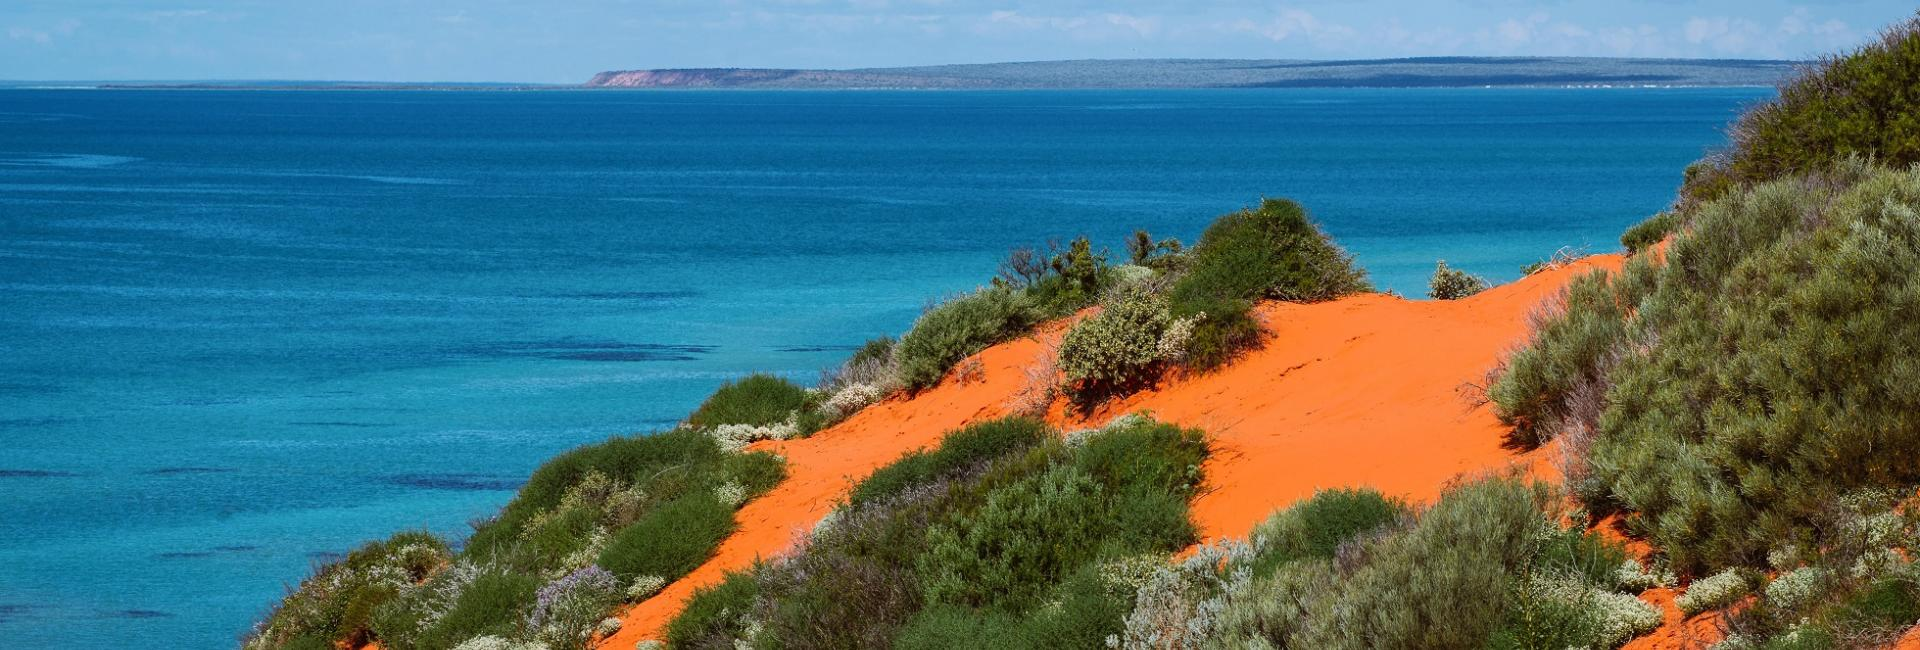 The red earth of Francois Peron National Park contrasts with the blue ocean. Shark Bay World Heritage Area, Western Australia